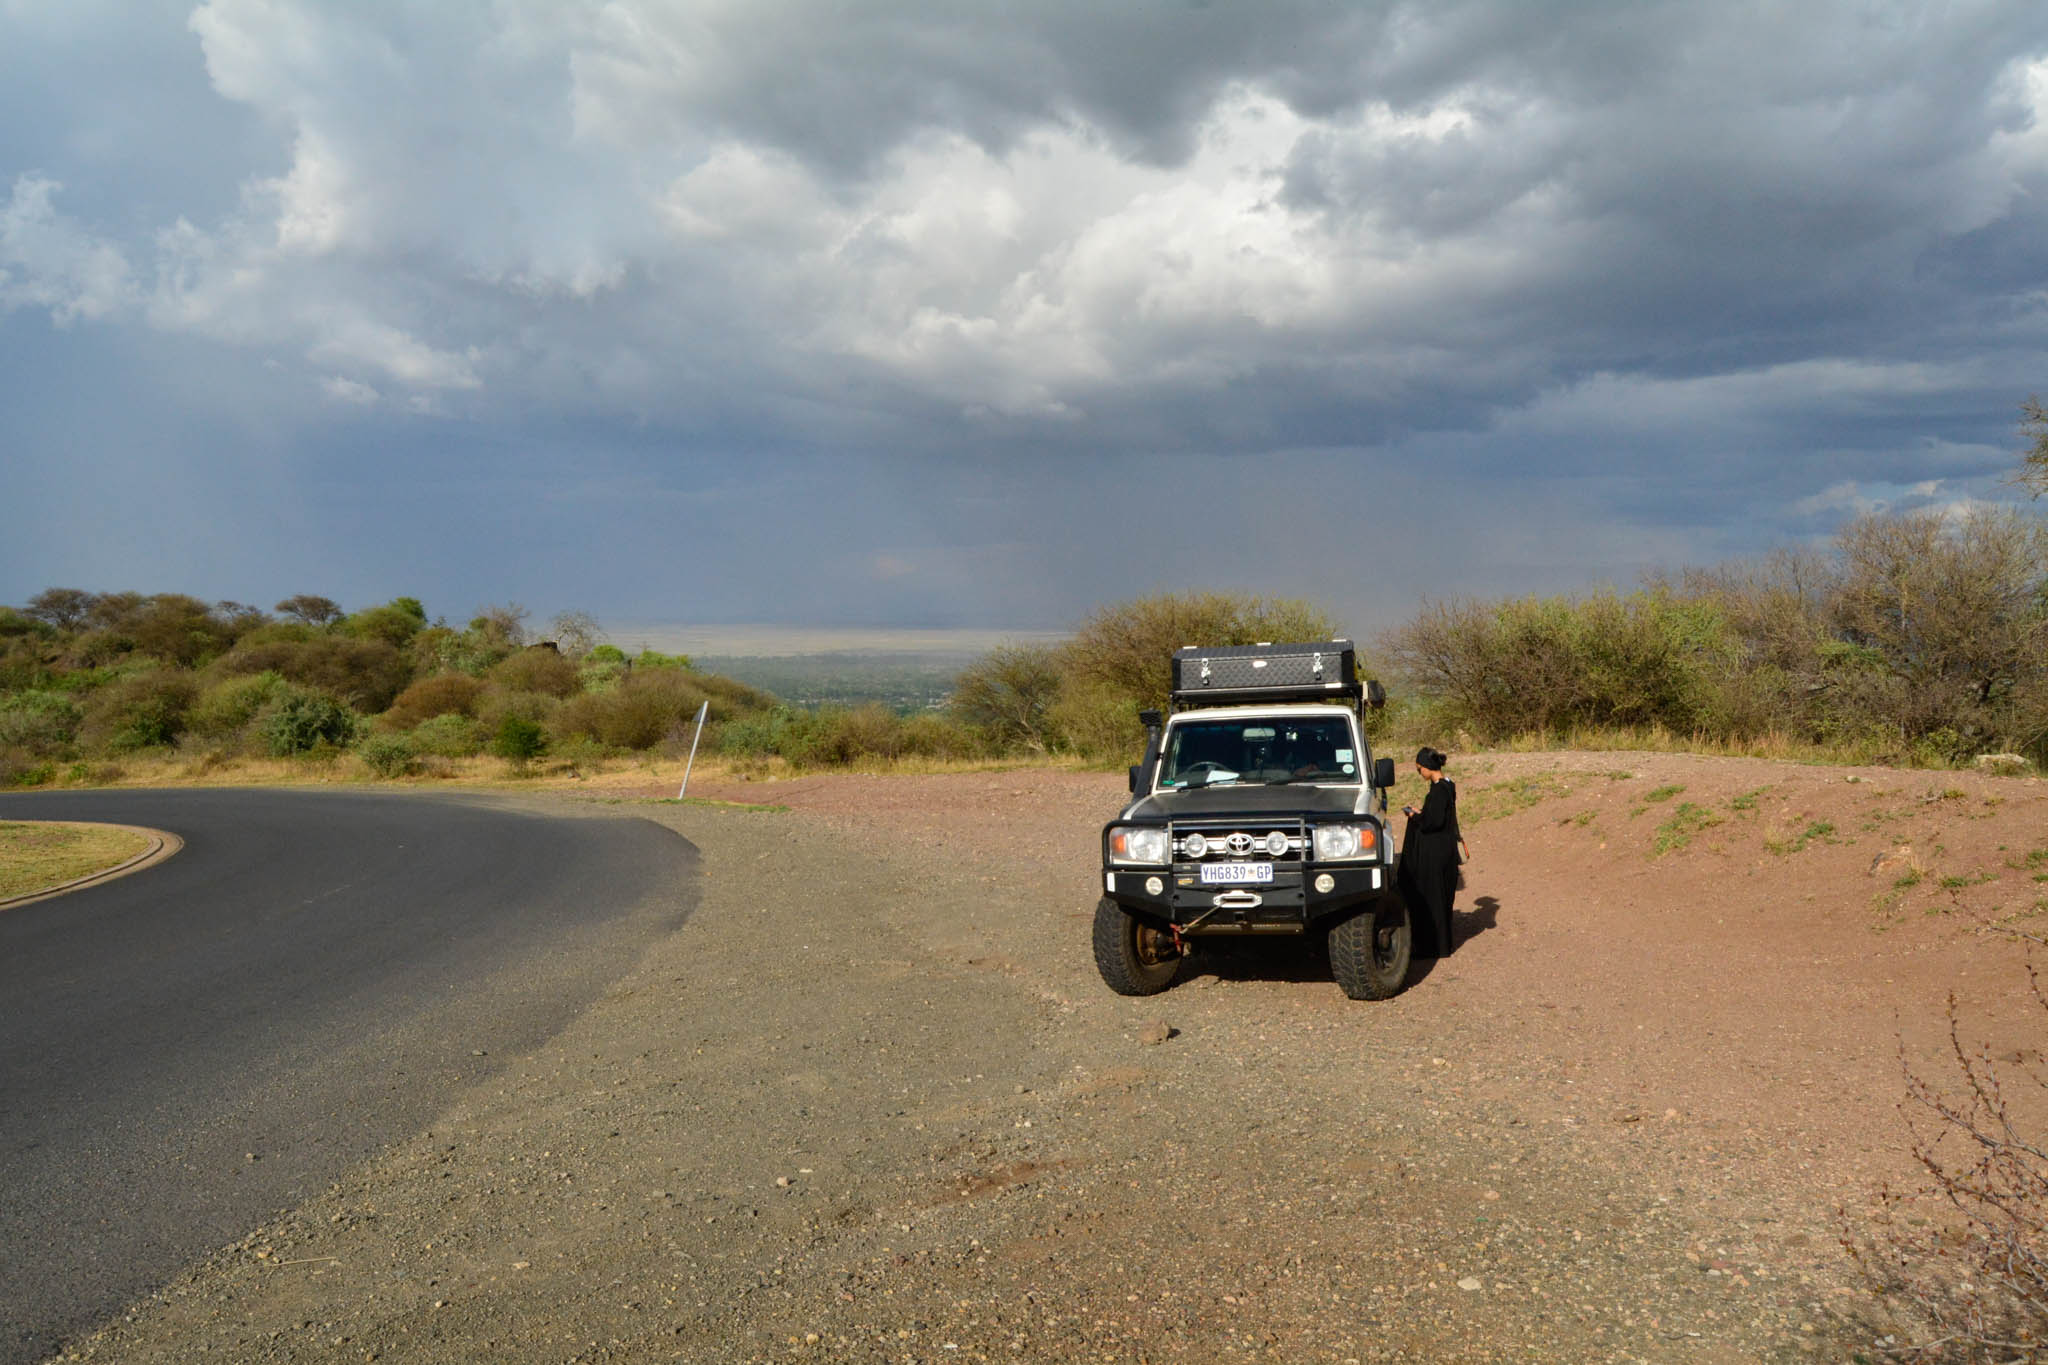 Stopped to view Lake Manyara